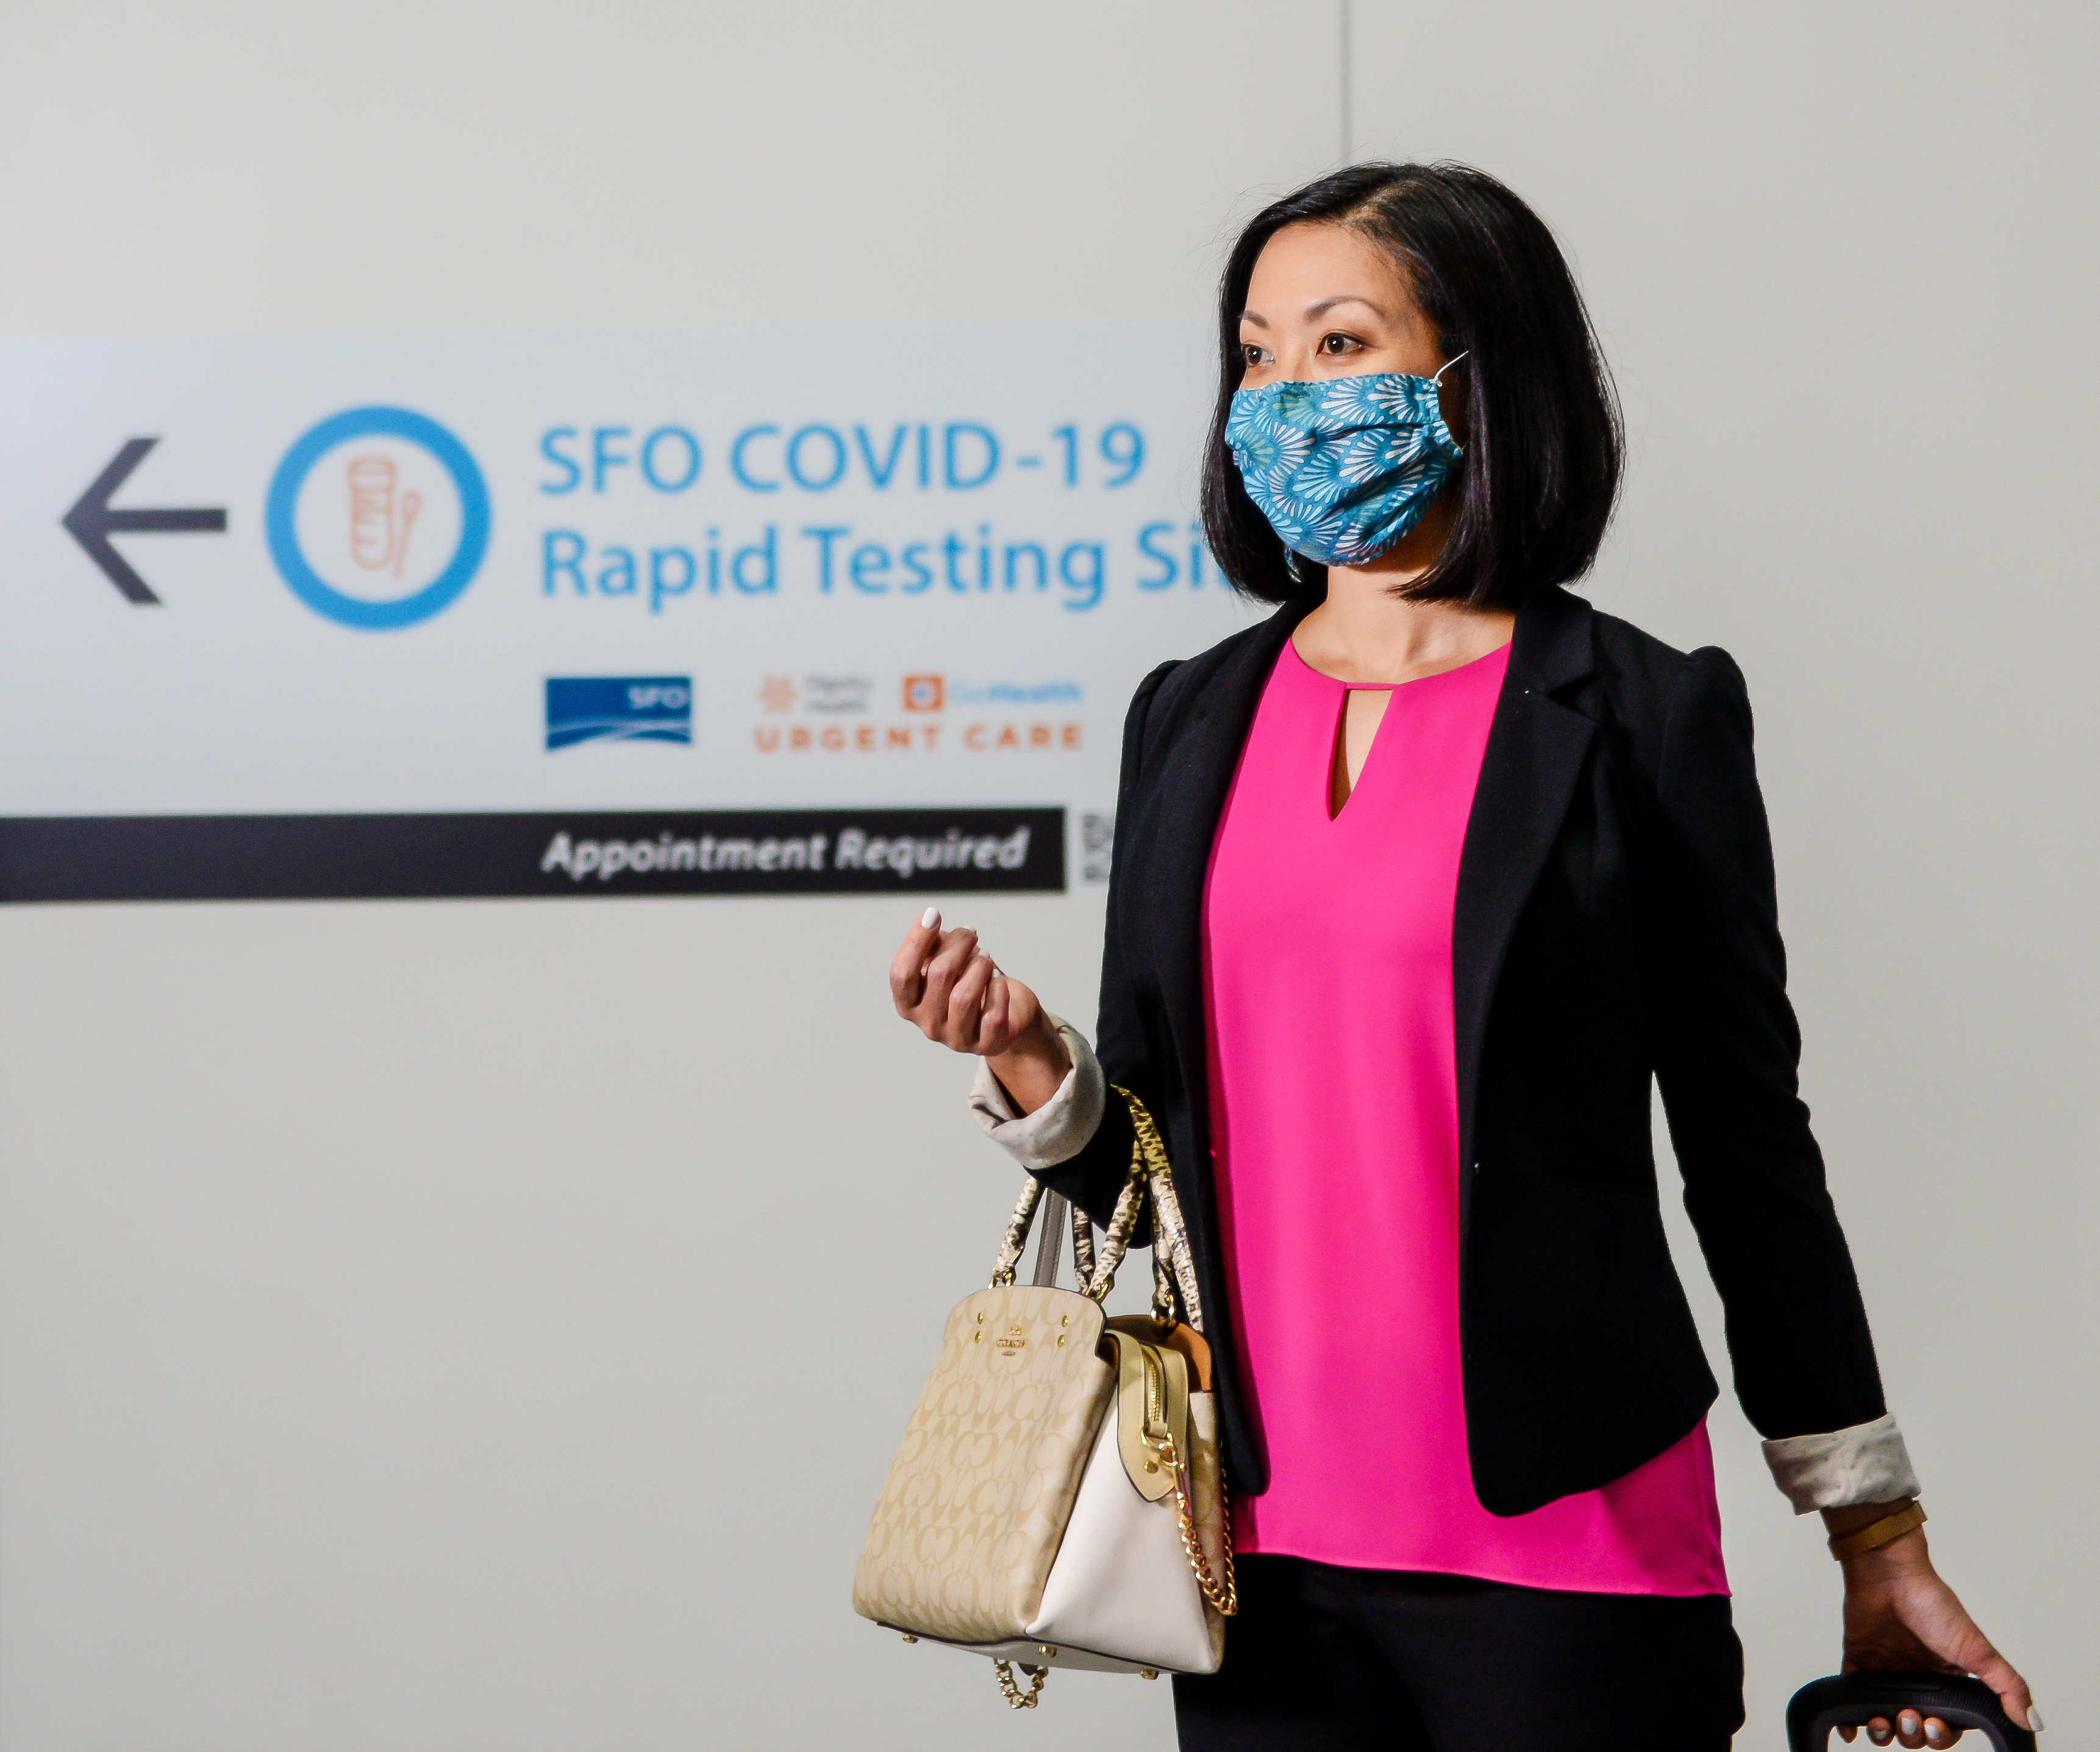 Some airports offer approved COVID-19 tests for travelers heading to Hawaii, including San Francisco International Airport.